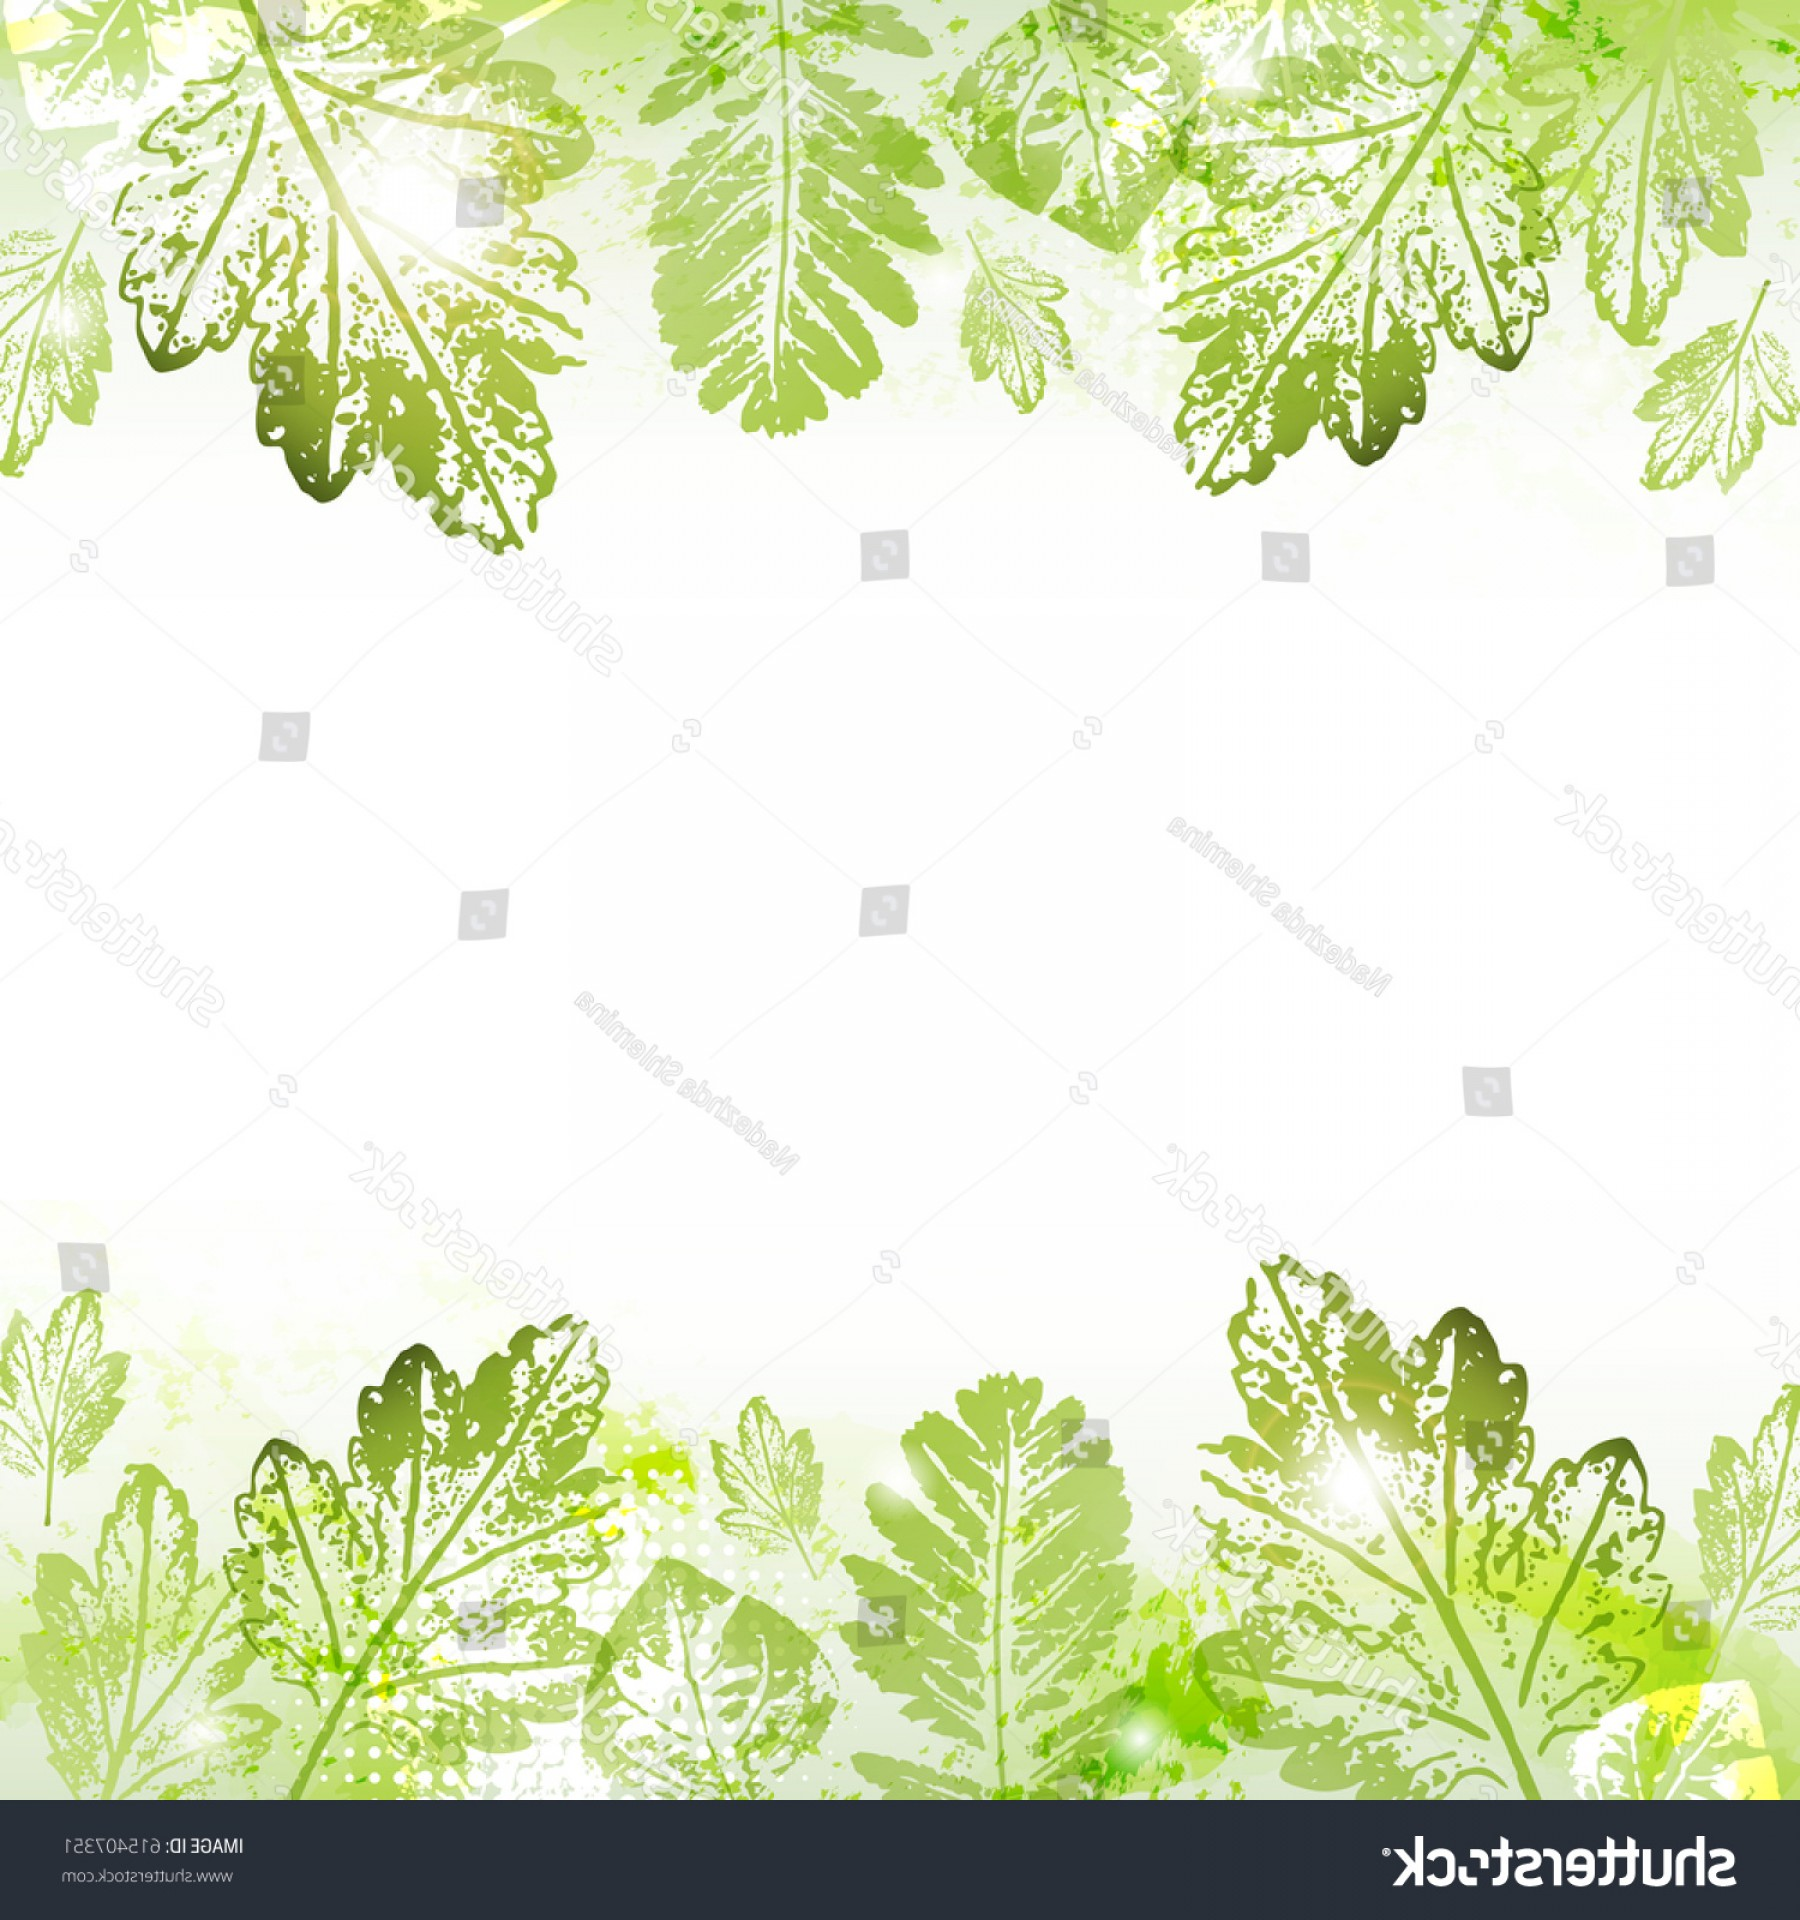 Firefly Serenity Vector: Stock Vector Abstract Spring Leaves Imprints Background With Space To Your Text